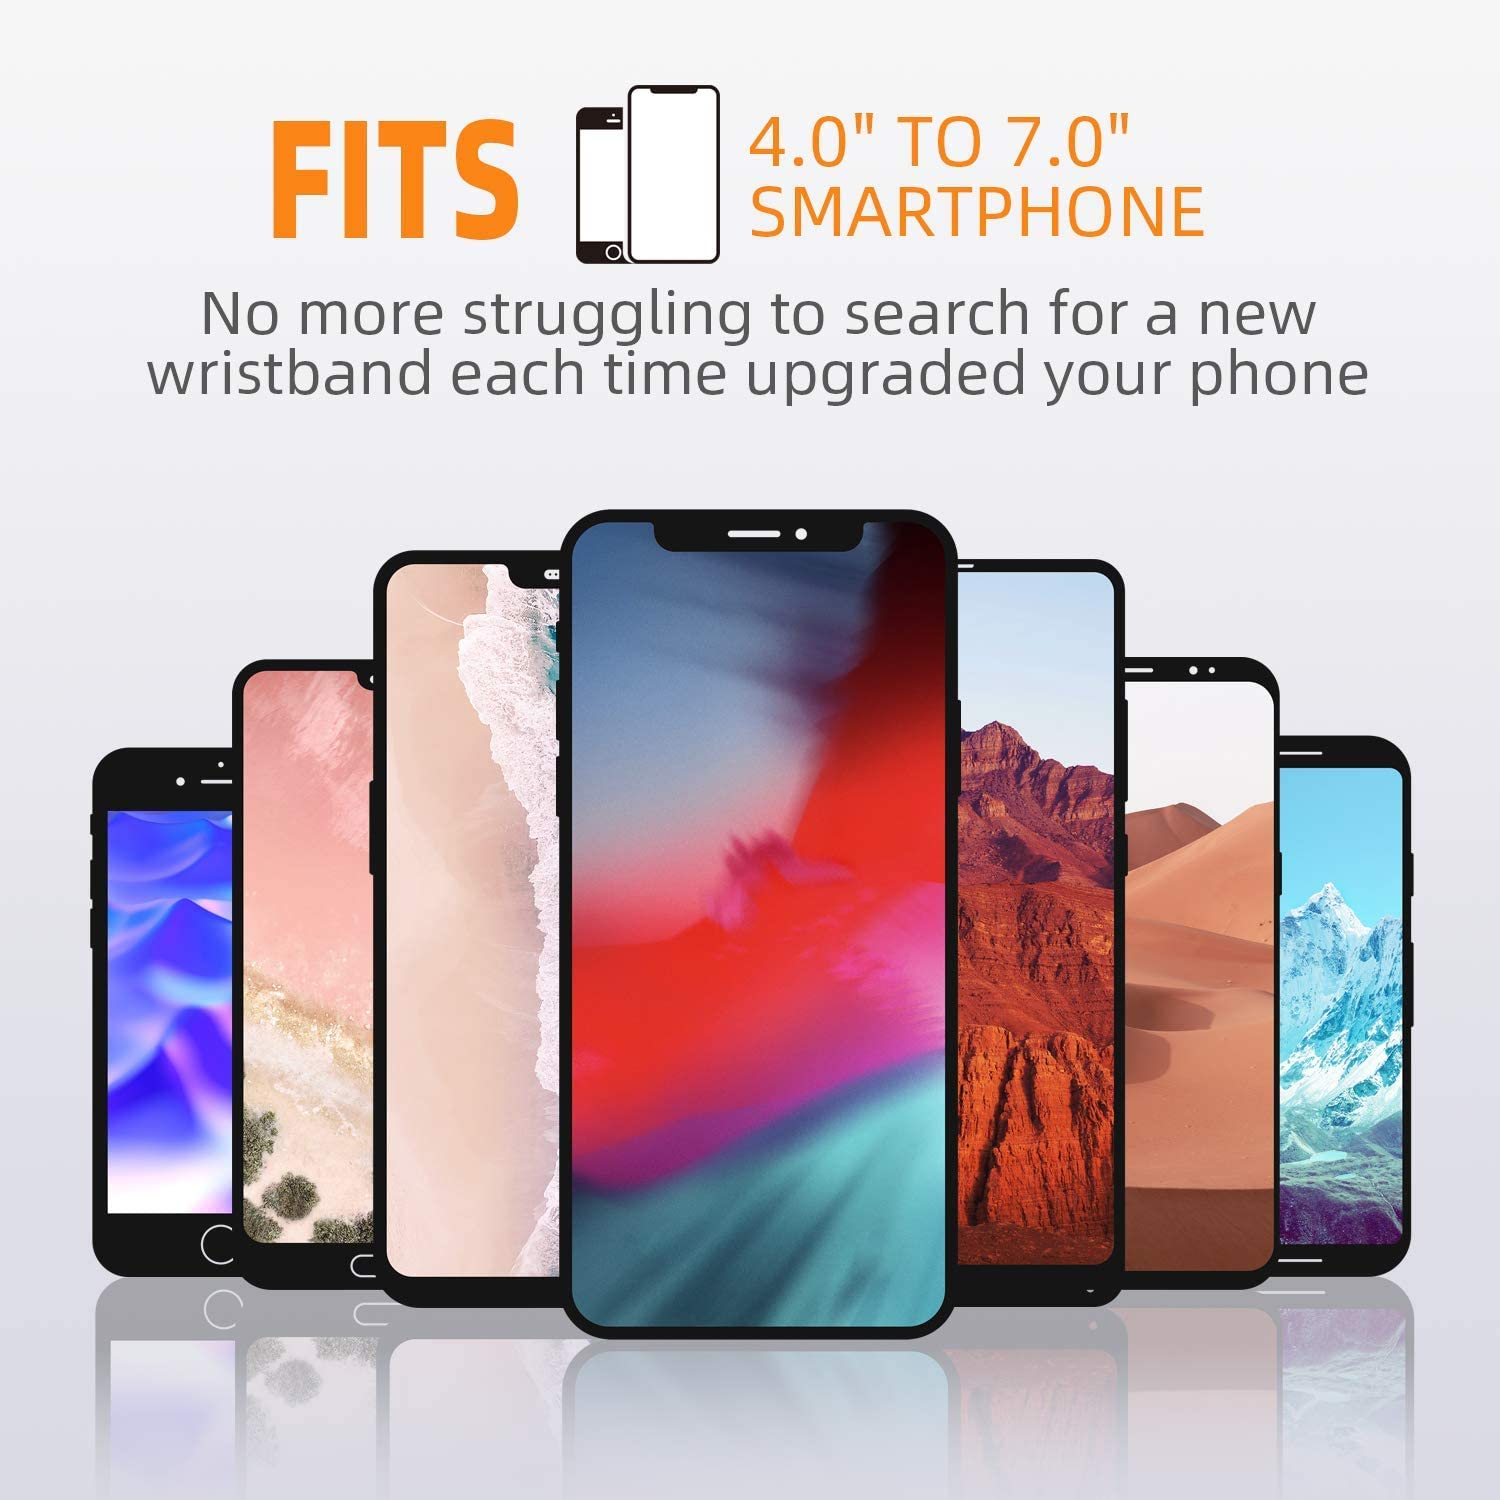 360/°Rotatable with Key Holder Wristband Phone Holder for iPhone X//8 Plus//8//7//6s//6 Plus//iPod Touch Running Wrist Band for 4-6.5Phone Detachable Sports Wristband for Androids,Samsung Galaxy